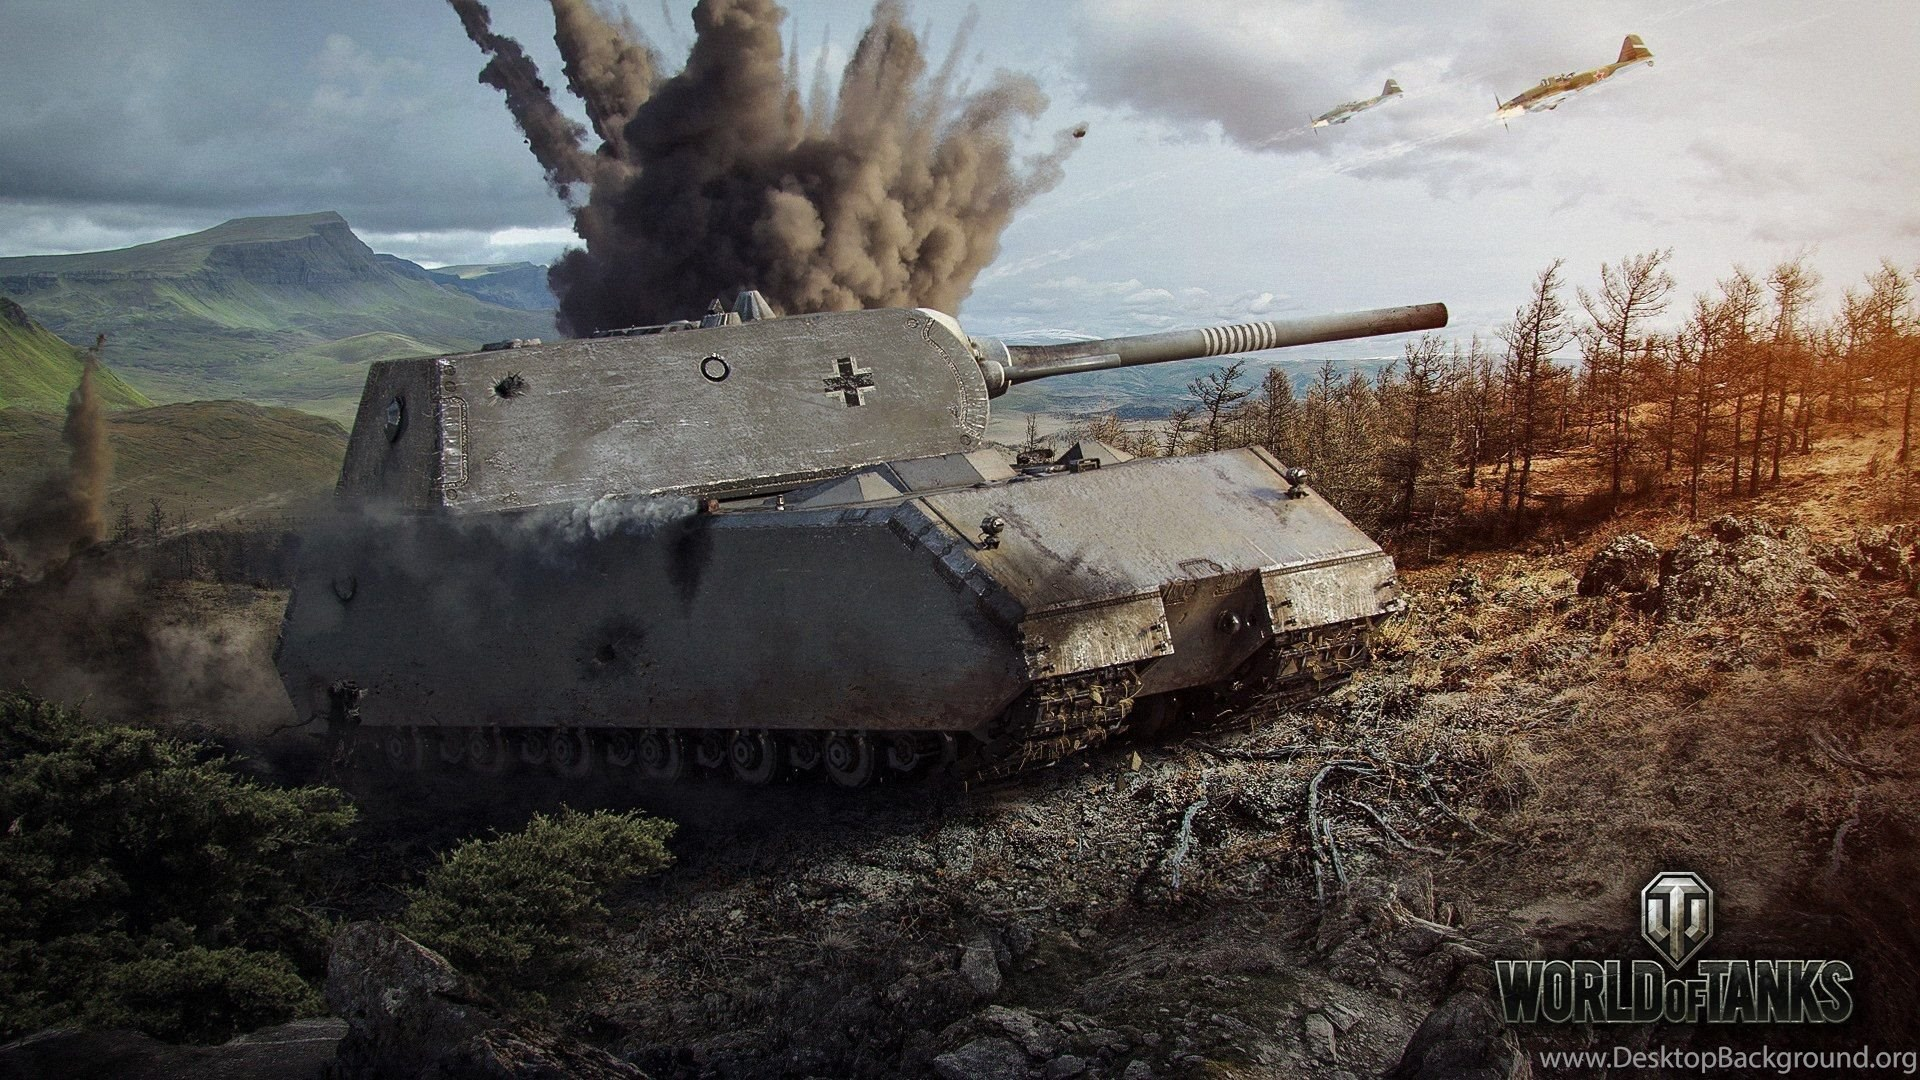 World Of Tanks Wallpapers Hd Desktop Attachment 6081 Hd